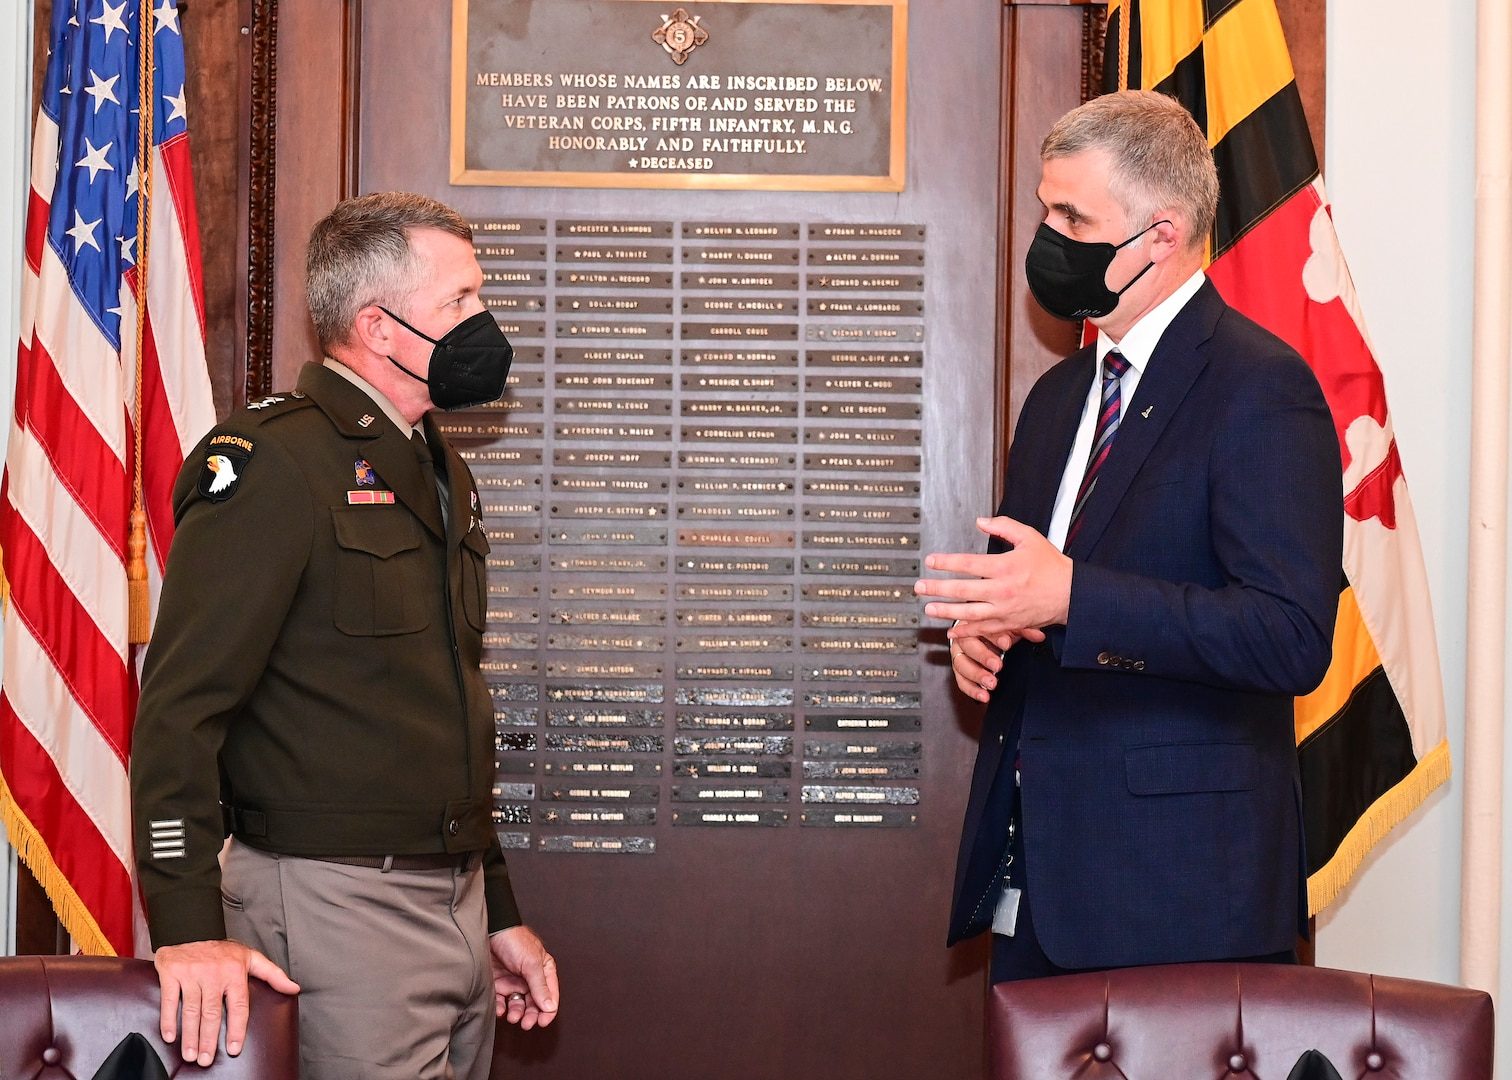 Kristjan Prikk (right), the Estonian Ambassador to The United States of America, met with U.S. Army Maj. In Baltimore, Maryland, Gen. Timothy Gowen (left), adjutant general for Maryland, was at the Fifth Regiment Armory on Sept. 15, 2021.